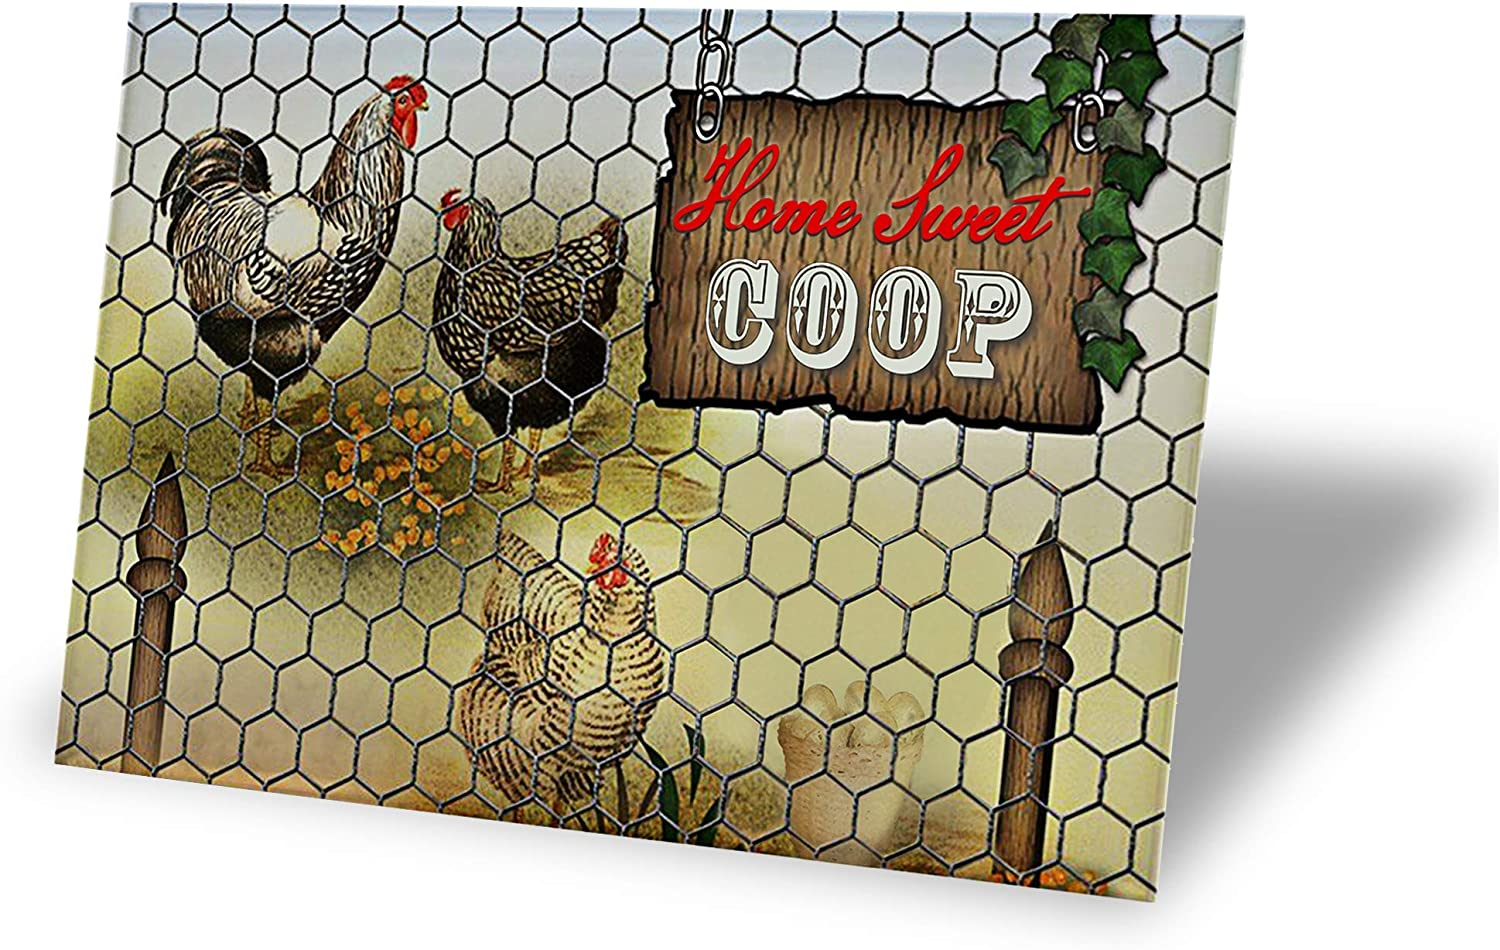 TINSIGNS Home Sweet Coop Tin Signs Retro Vintage Decor Metal Bar Coop Kitchen Sign 12x8Inch